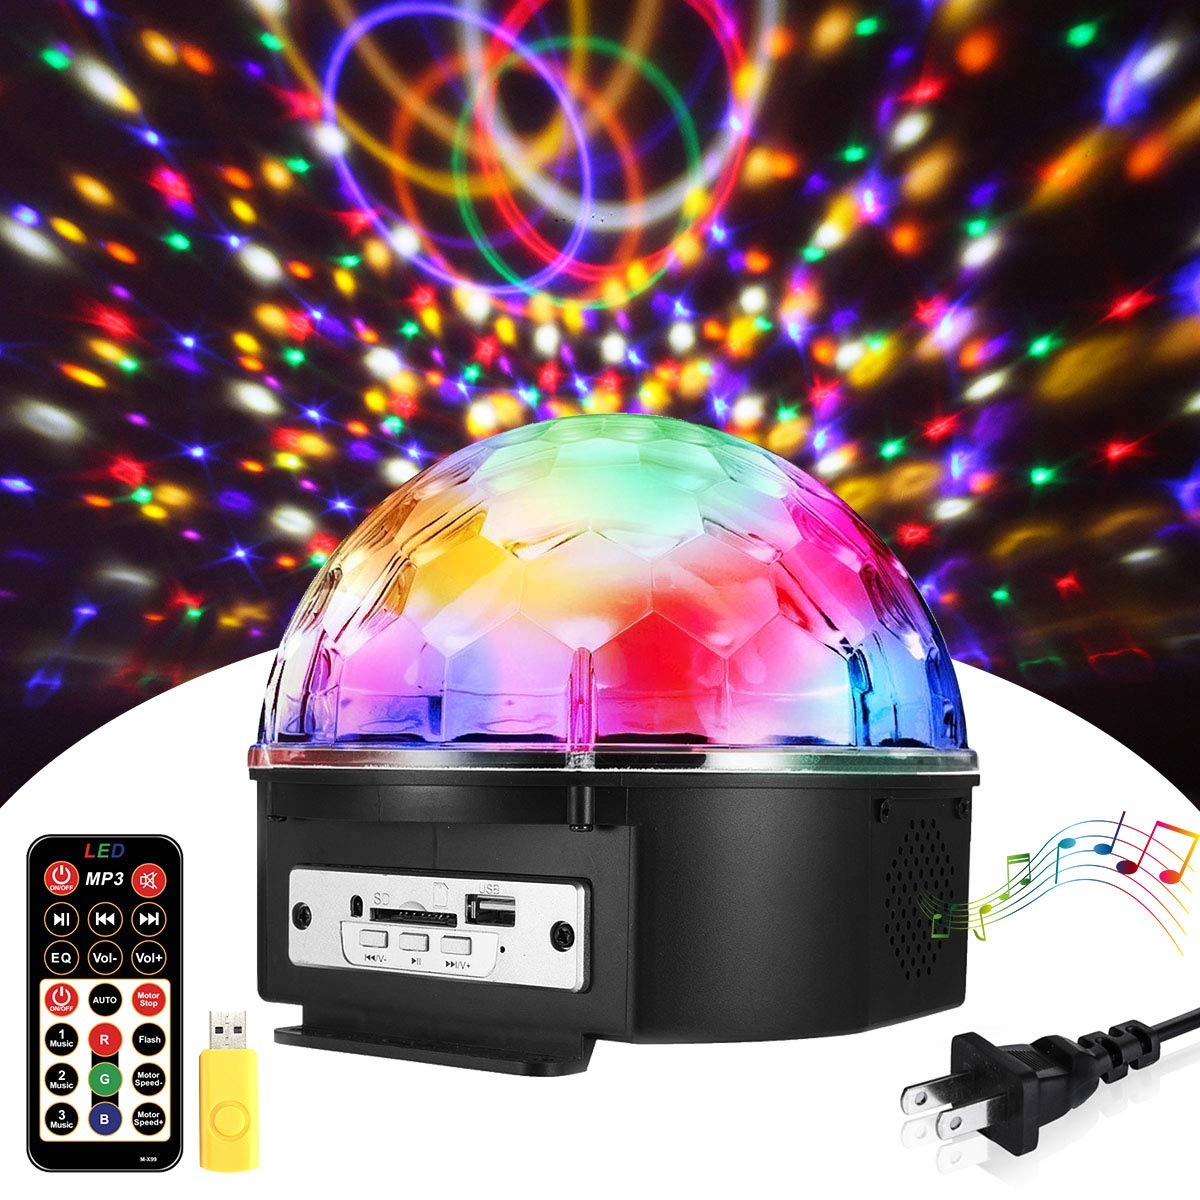 Jewelry & Watches Aspiring Led Moving Head Lighting Fixture For Parties And Events Bridal & Wedding Party Jewelry